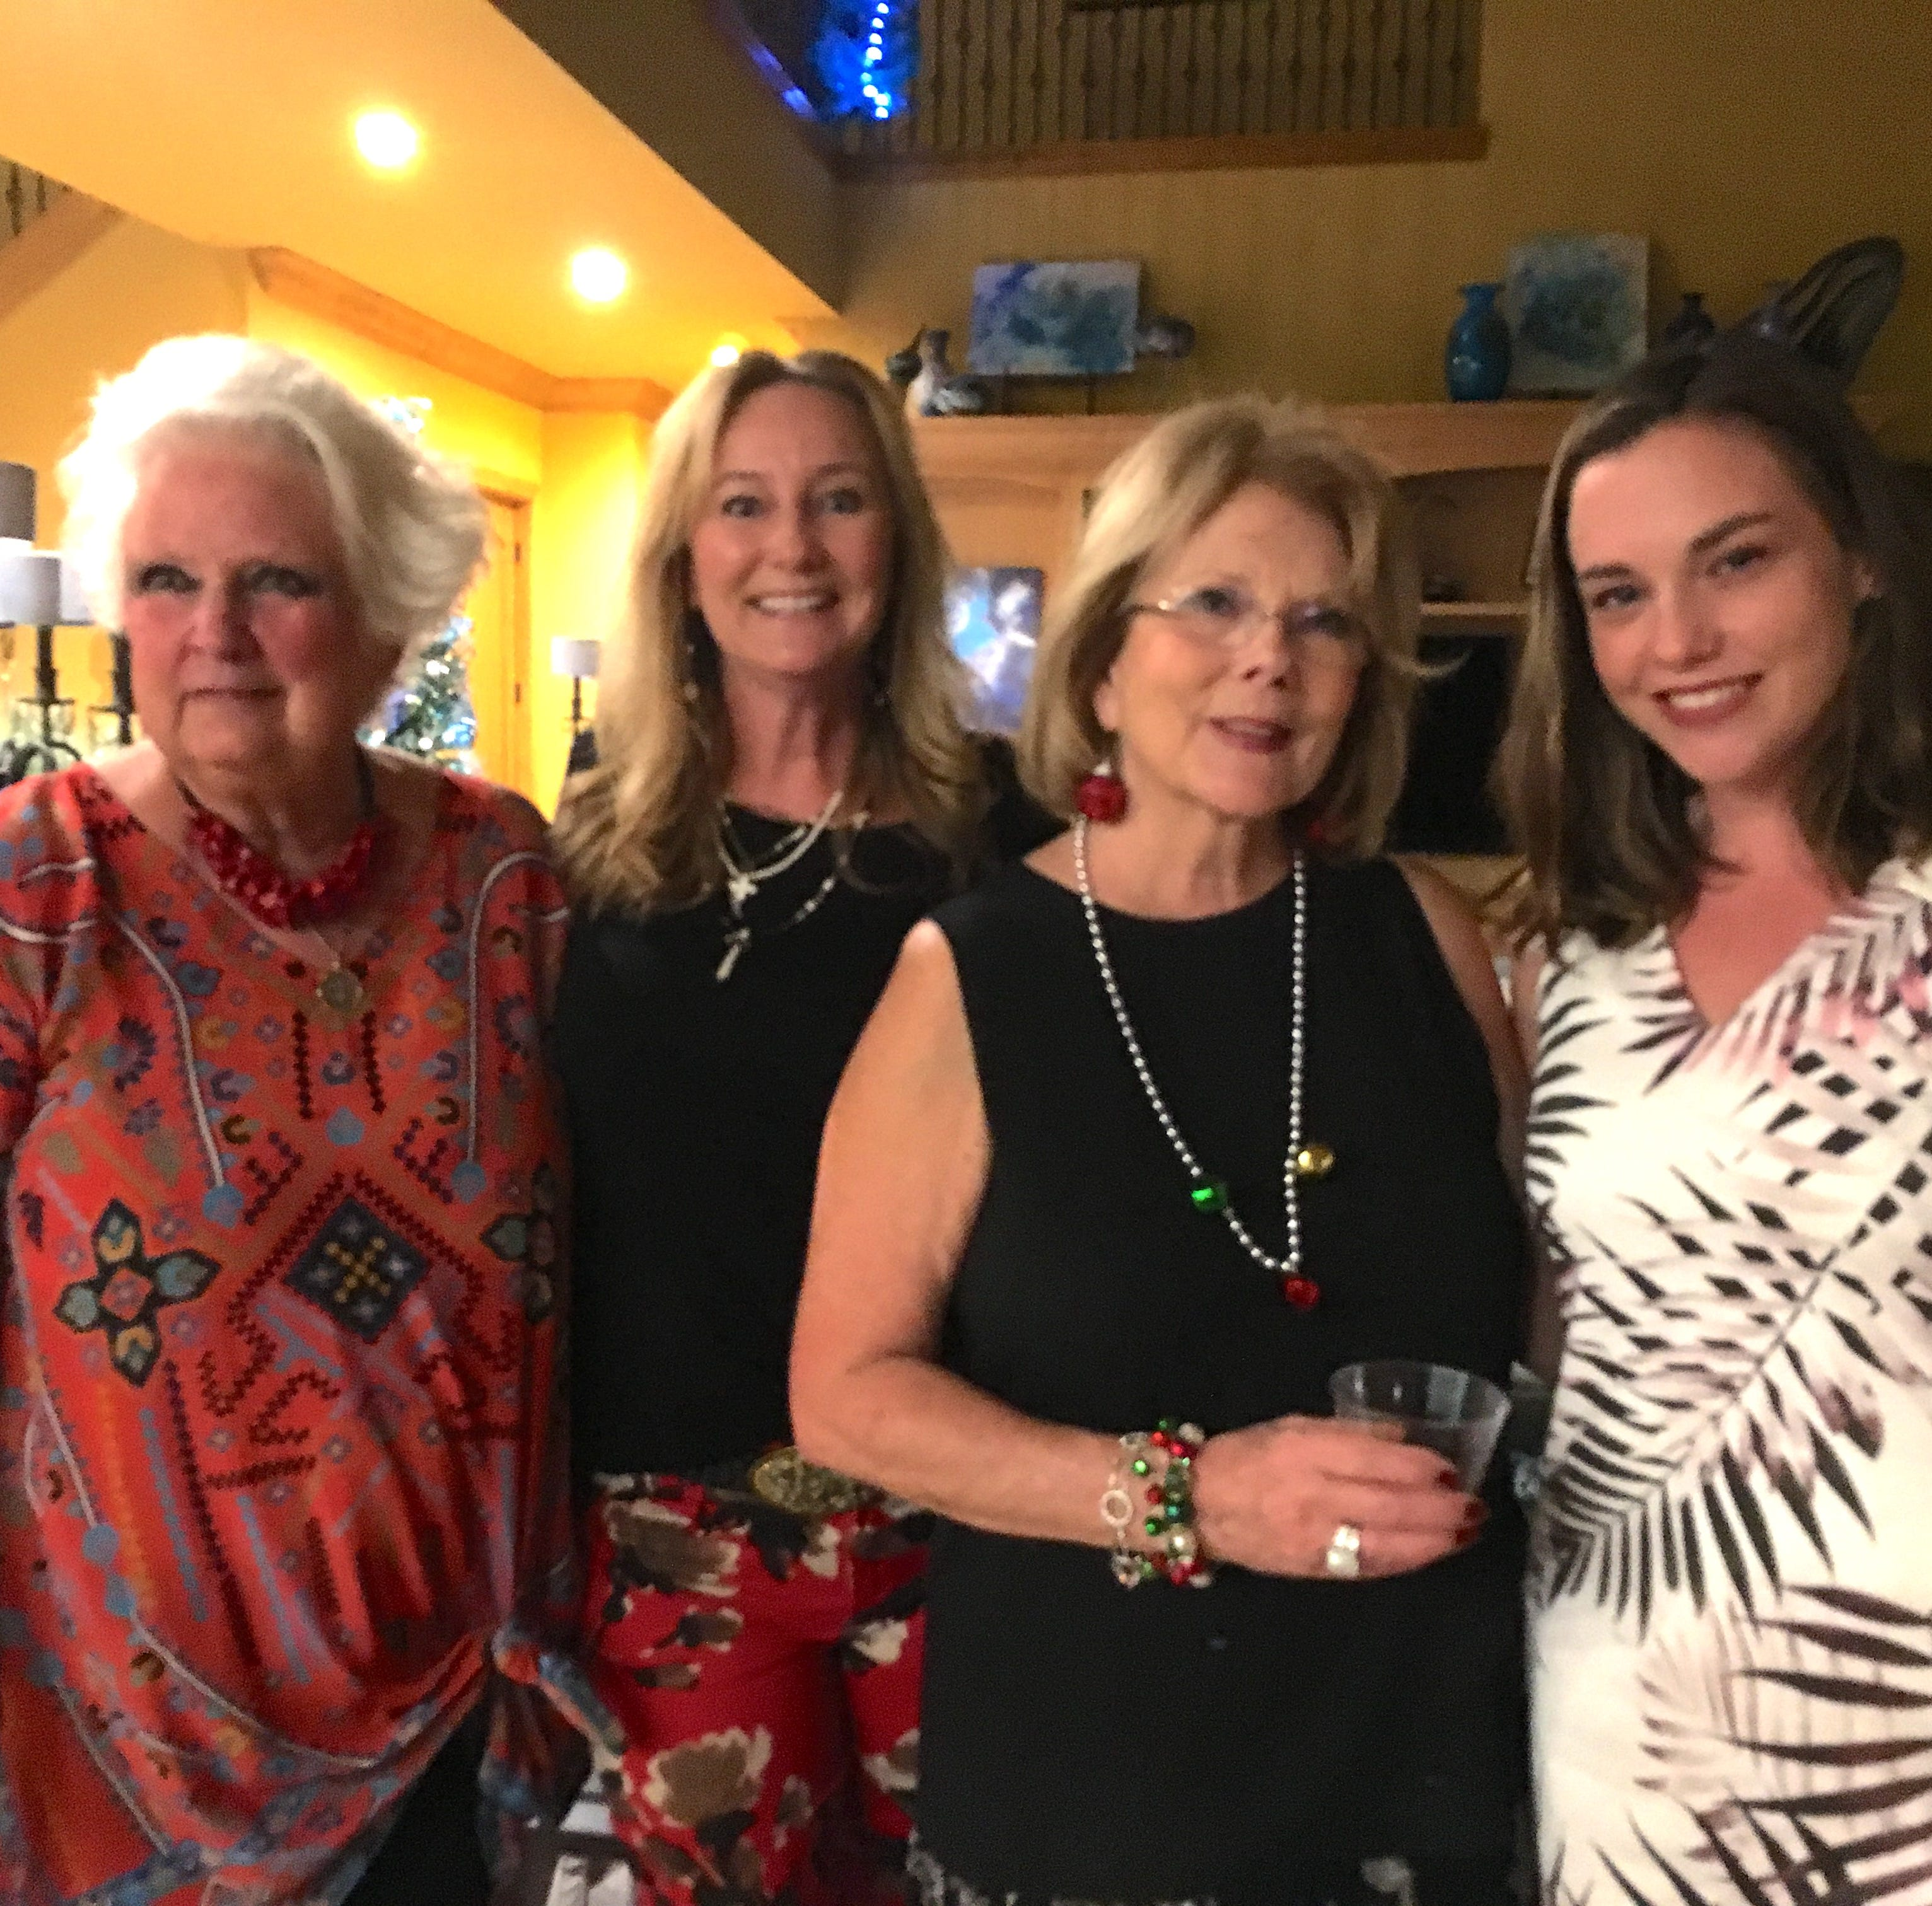 Social scene: Calusa Garden Club celebrates the season